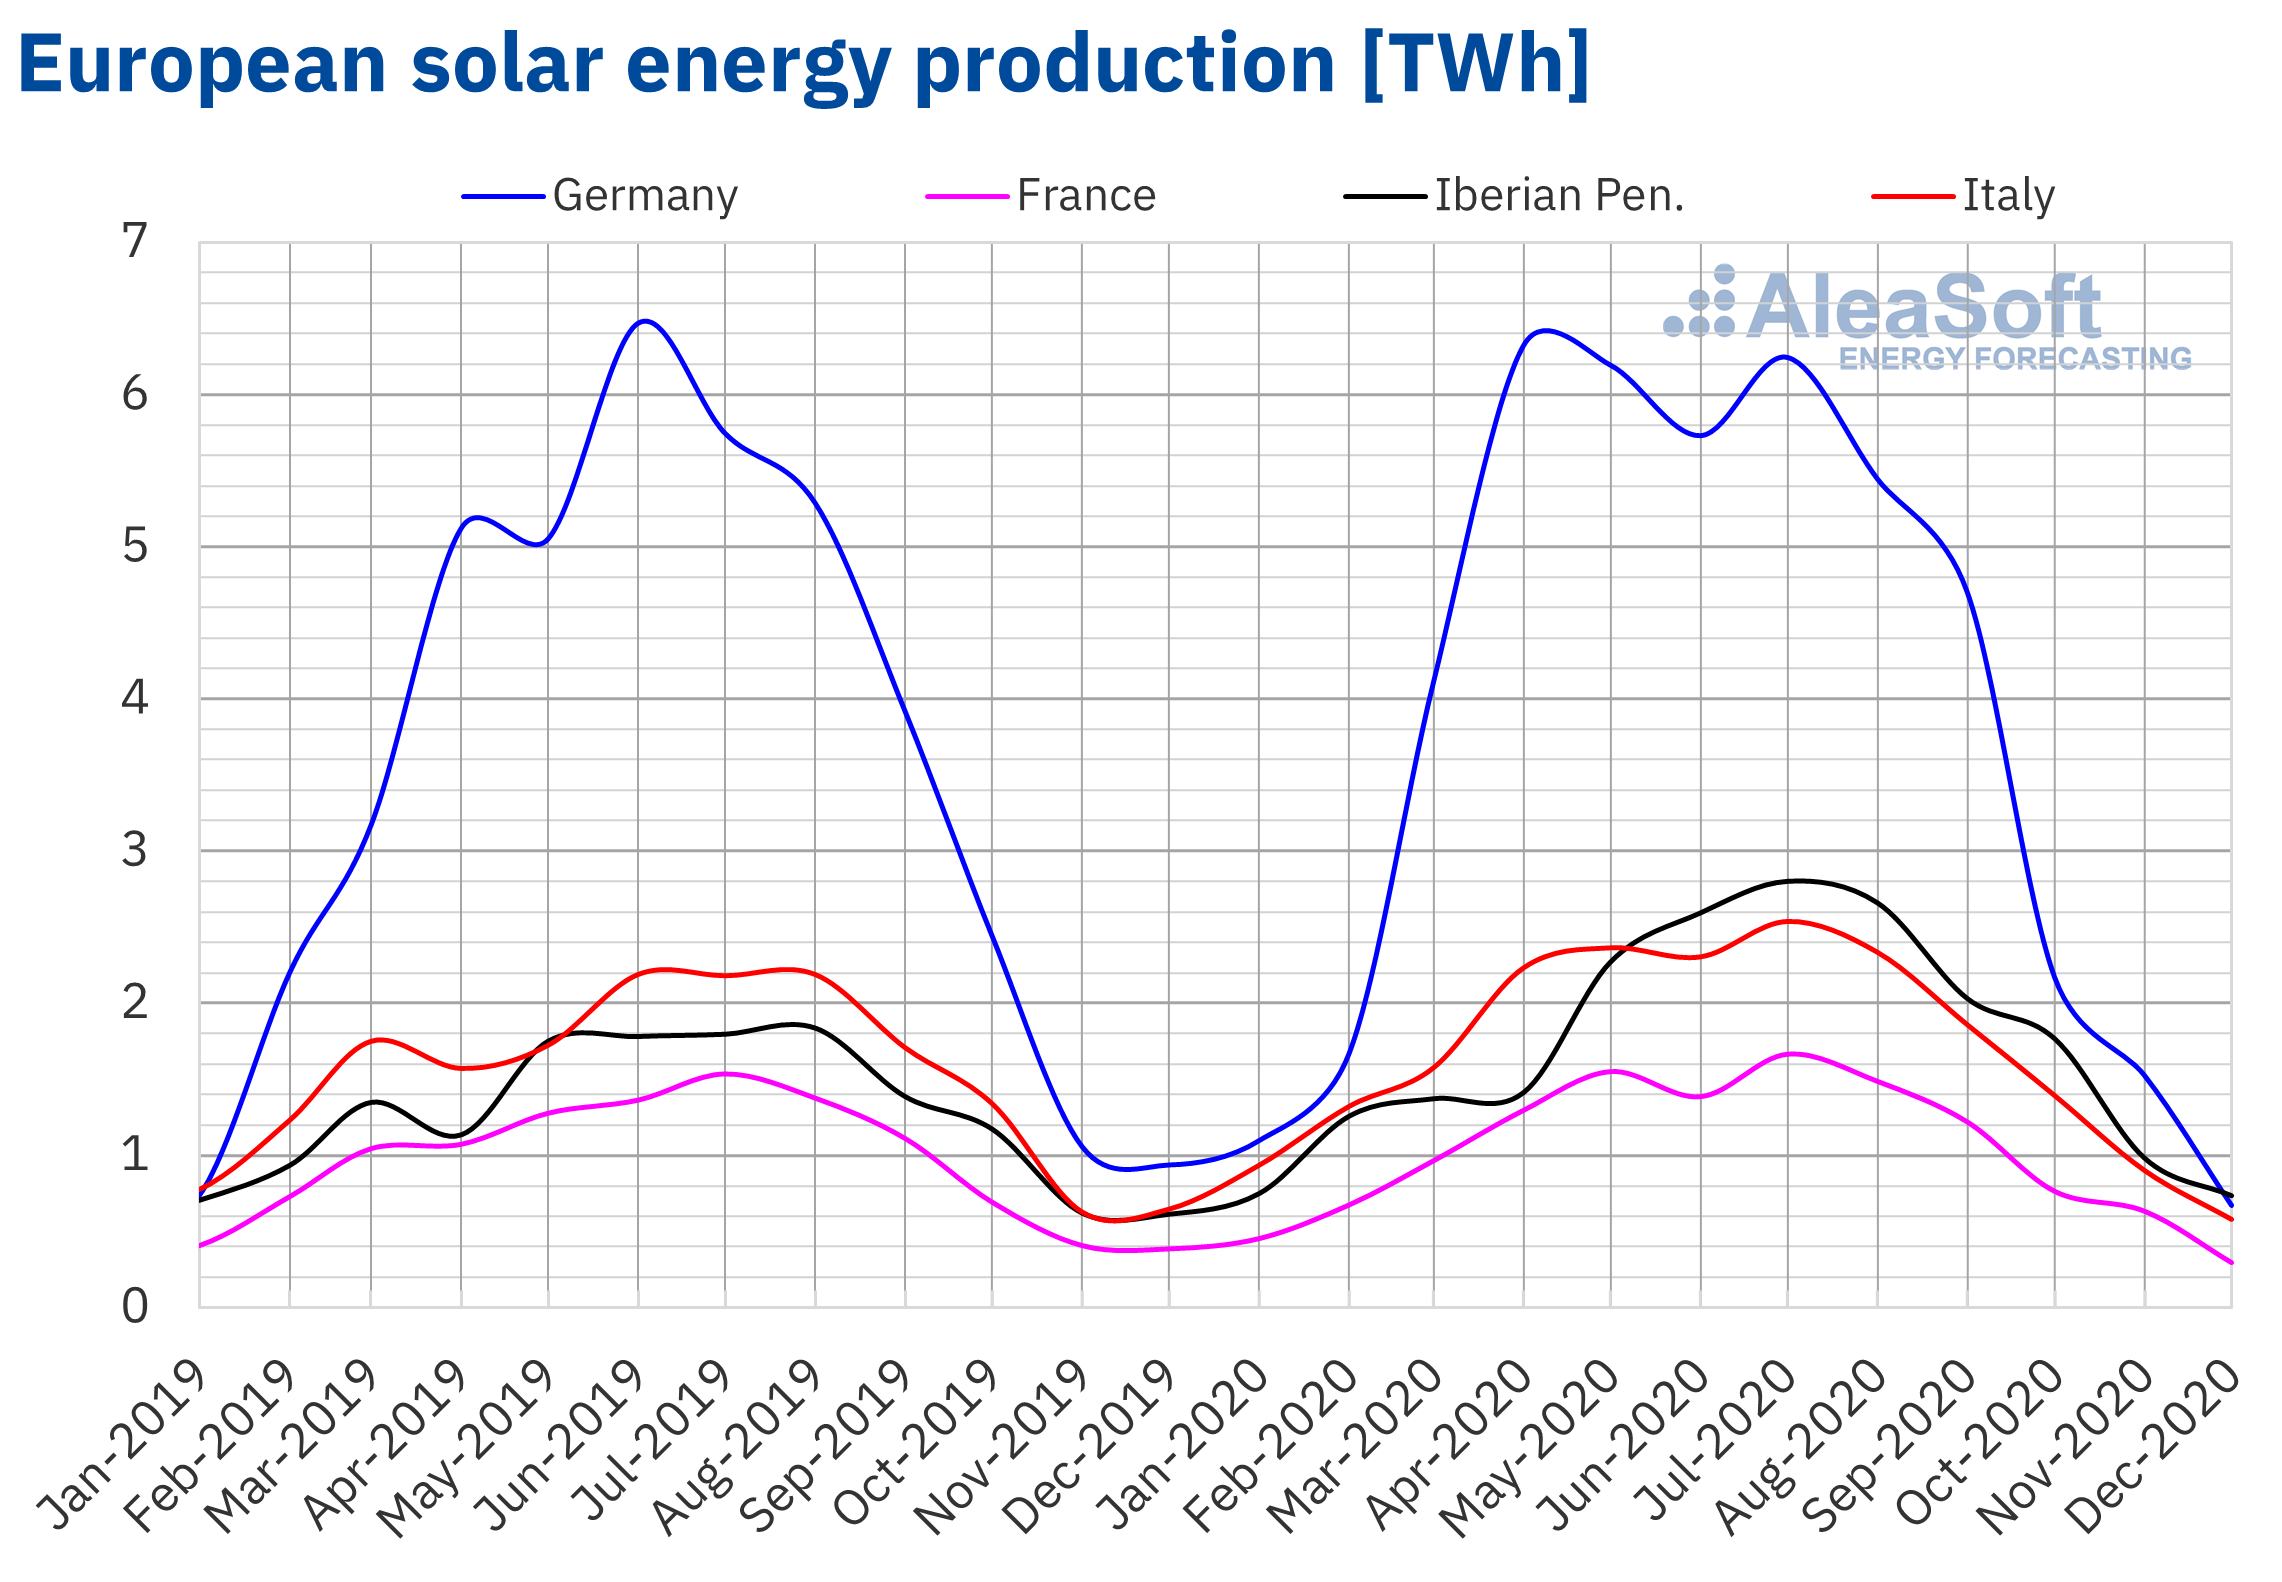 AleaSoft - Monthly solar photovoltaic thermosolar energy production electricity Europe 2020